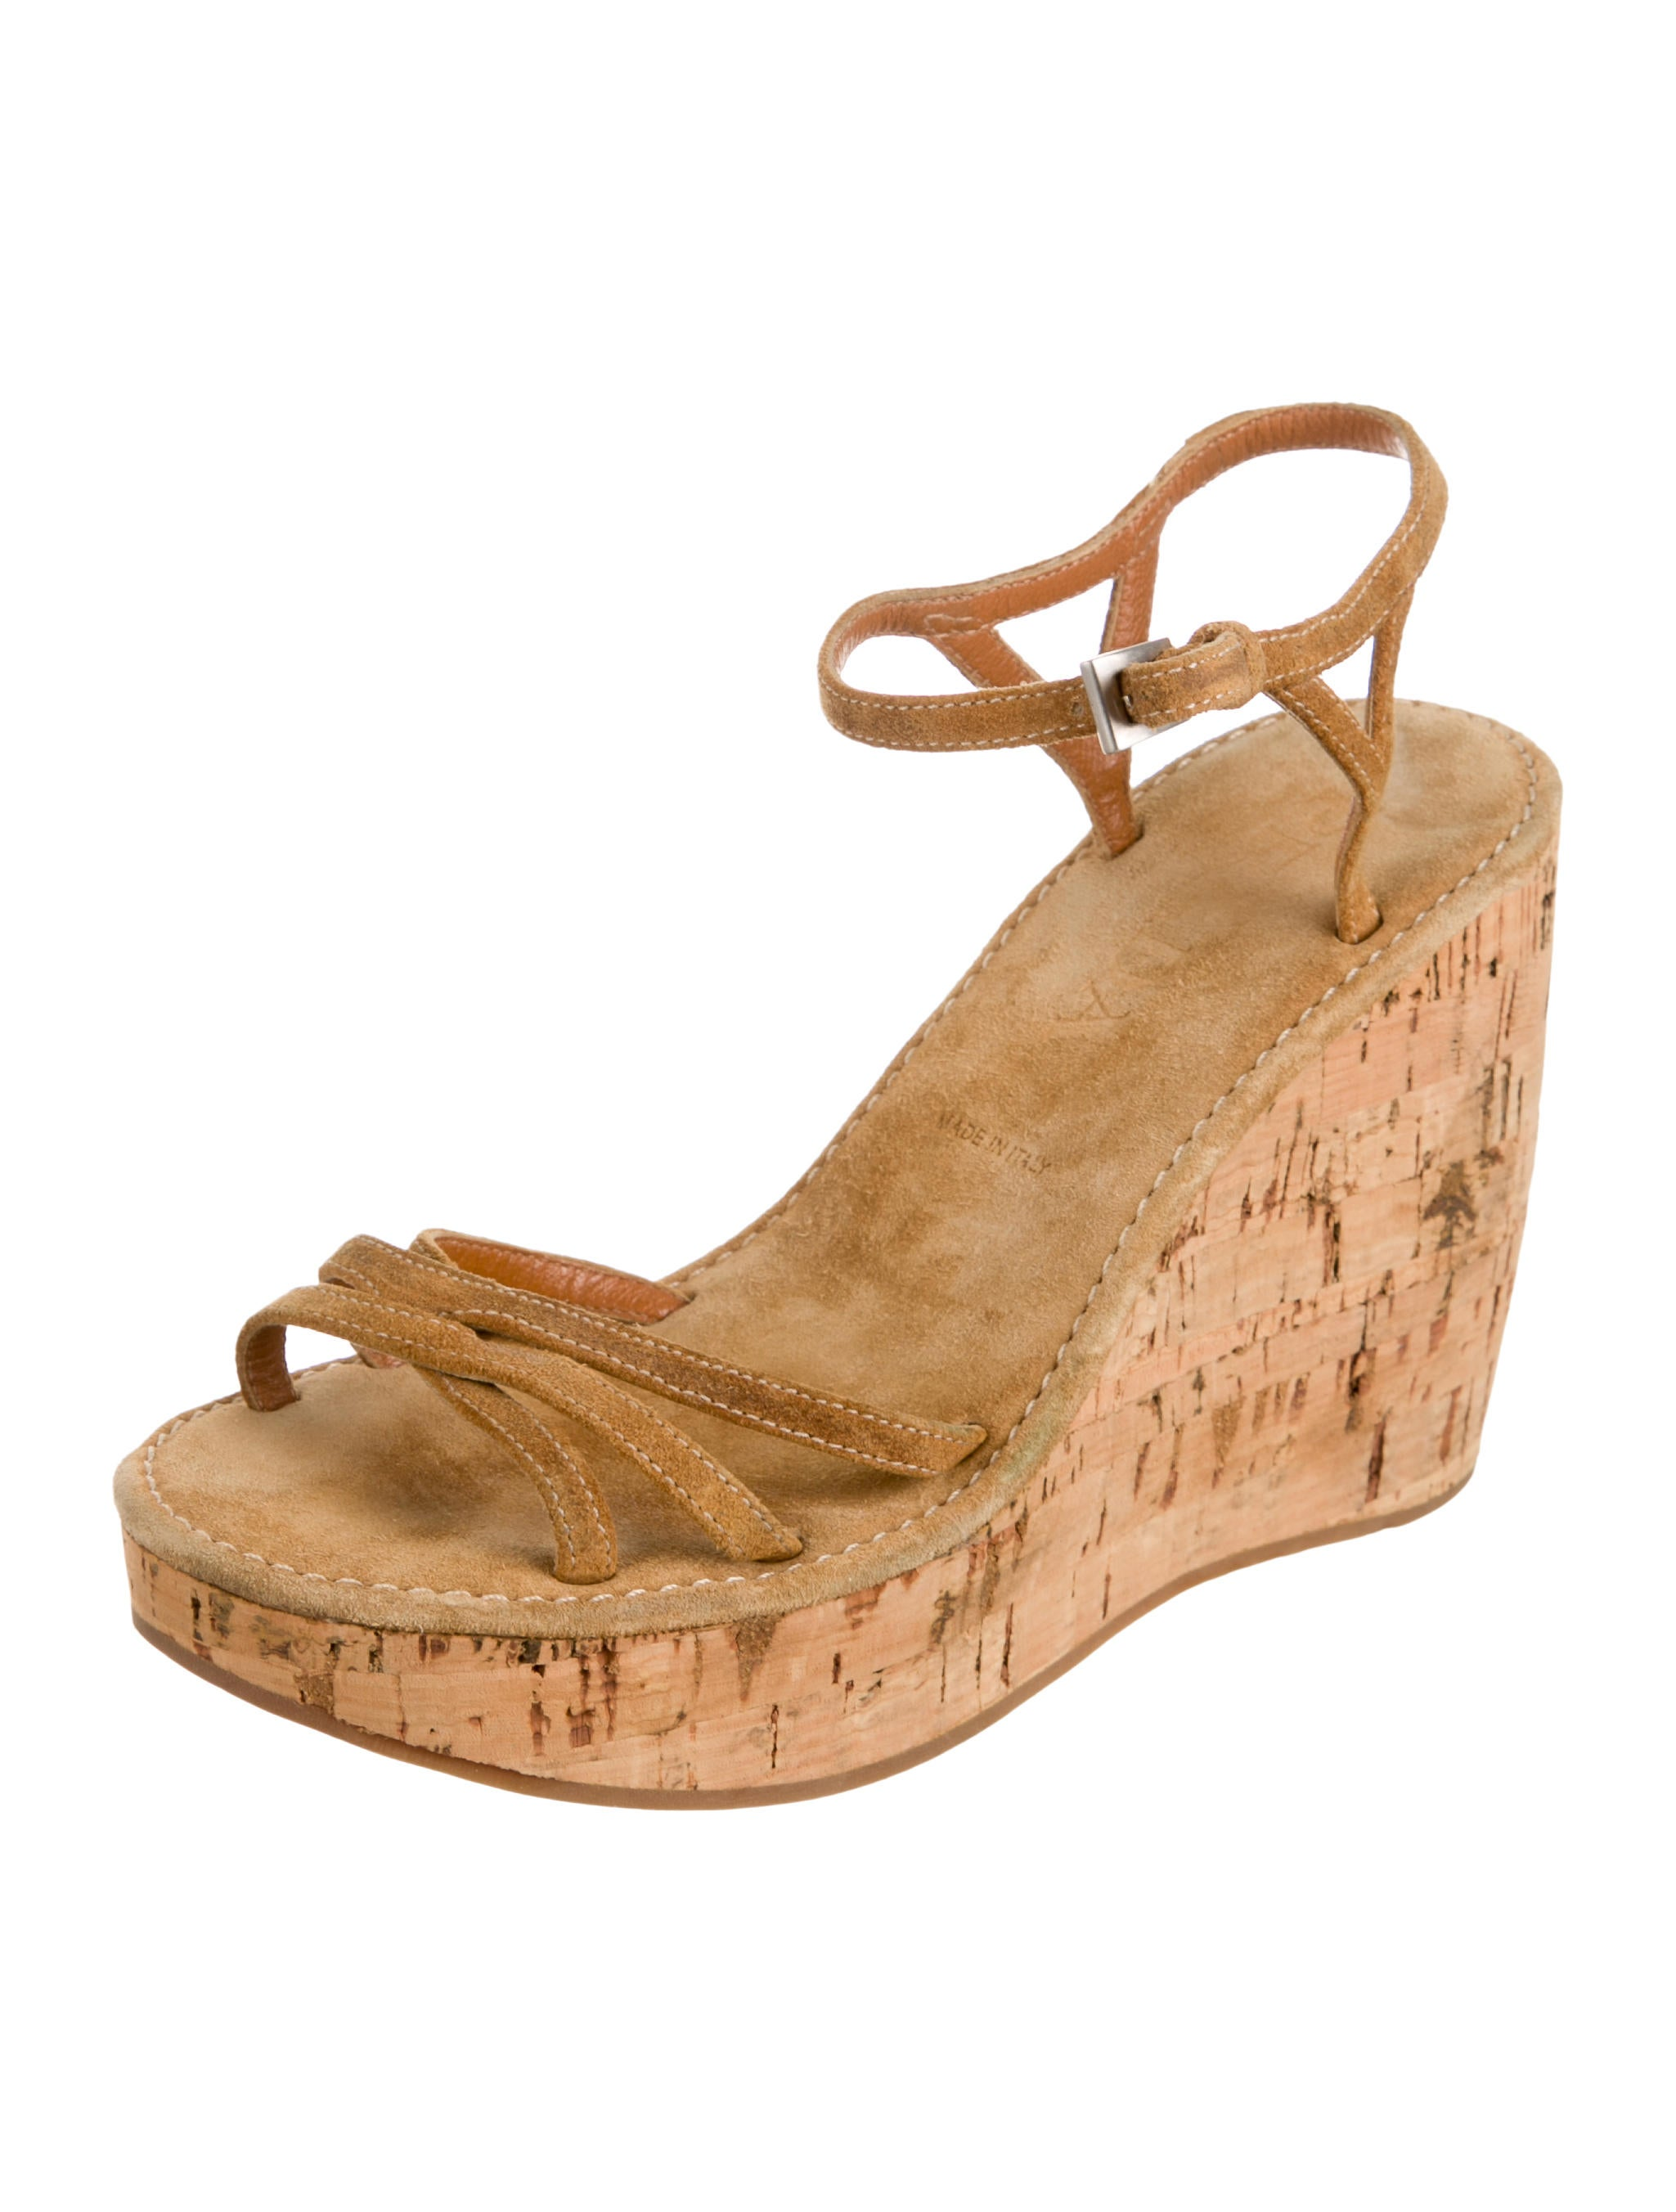 prada suede platform wedge sandals shoes pra82750